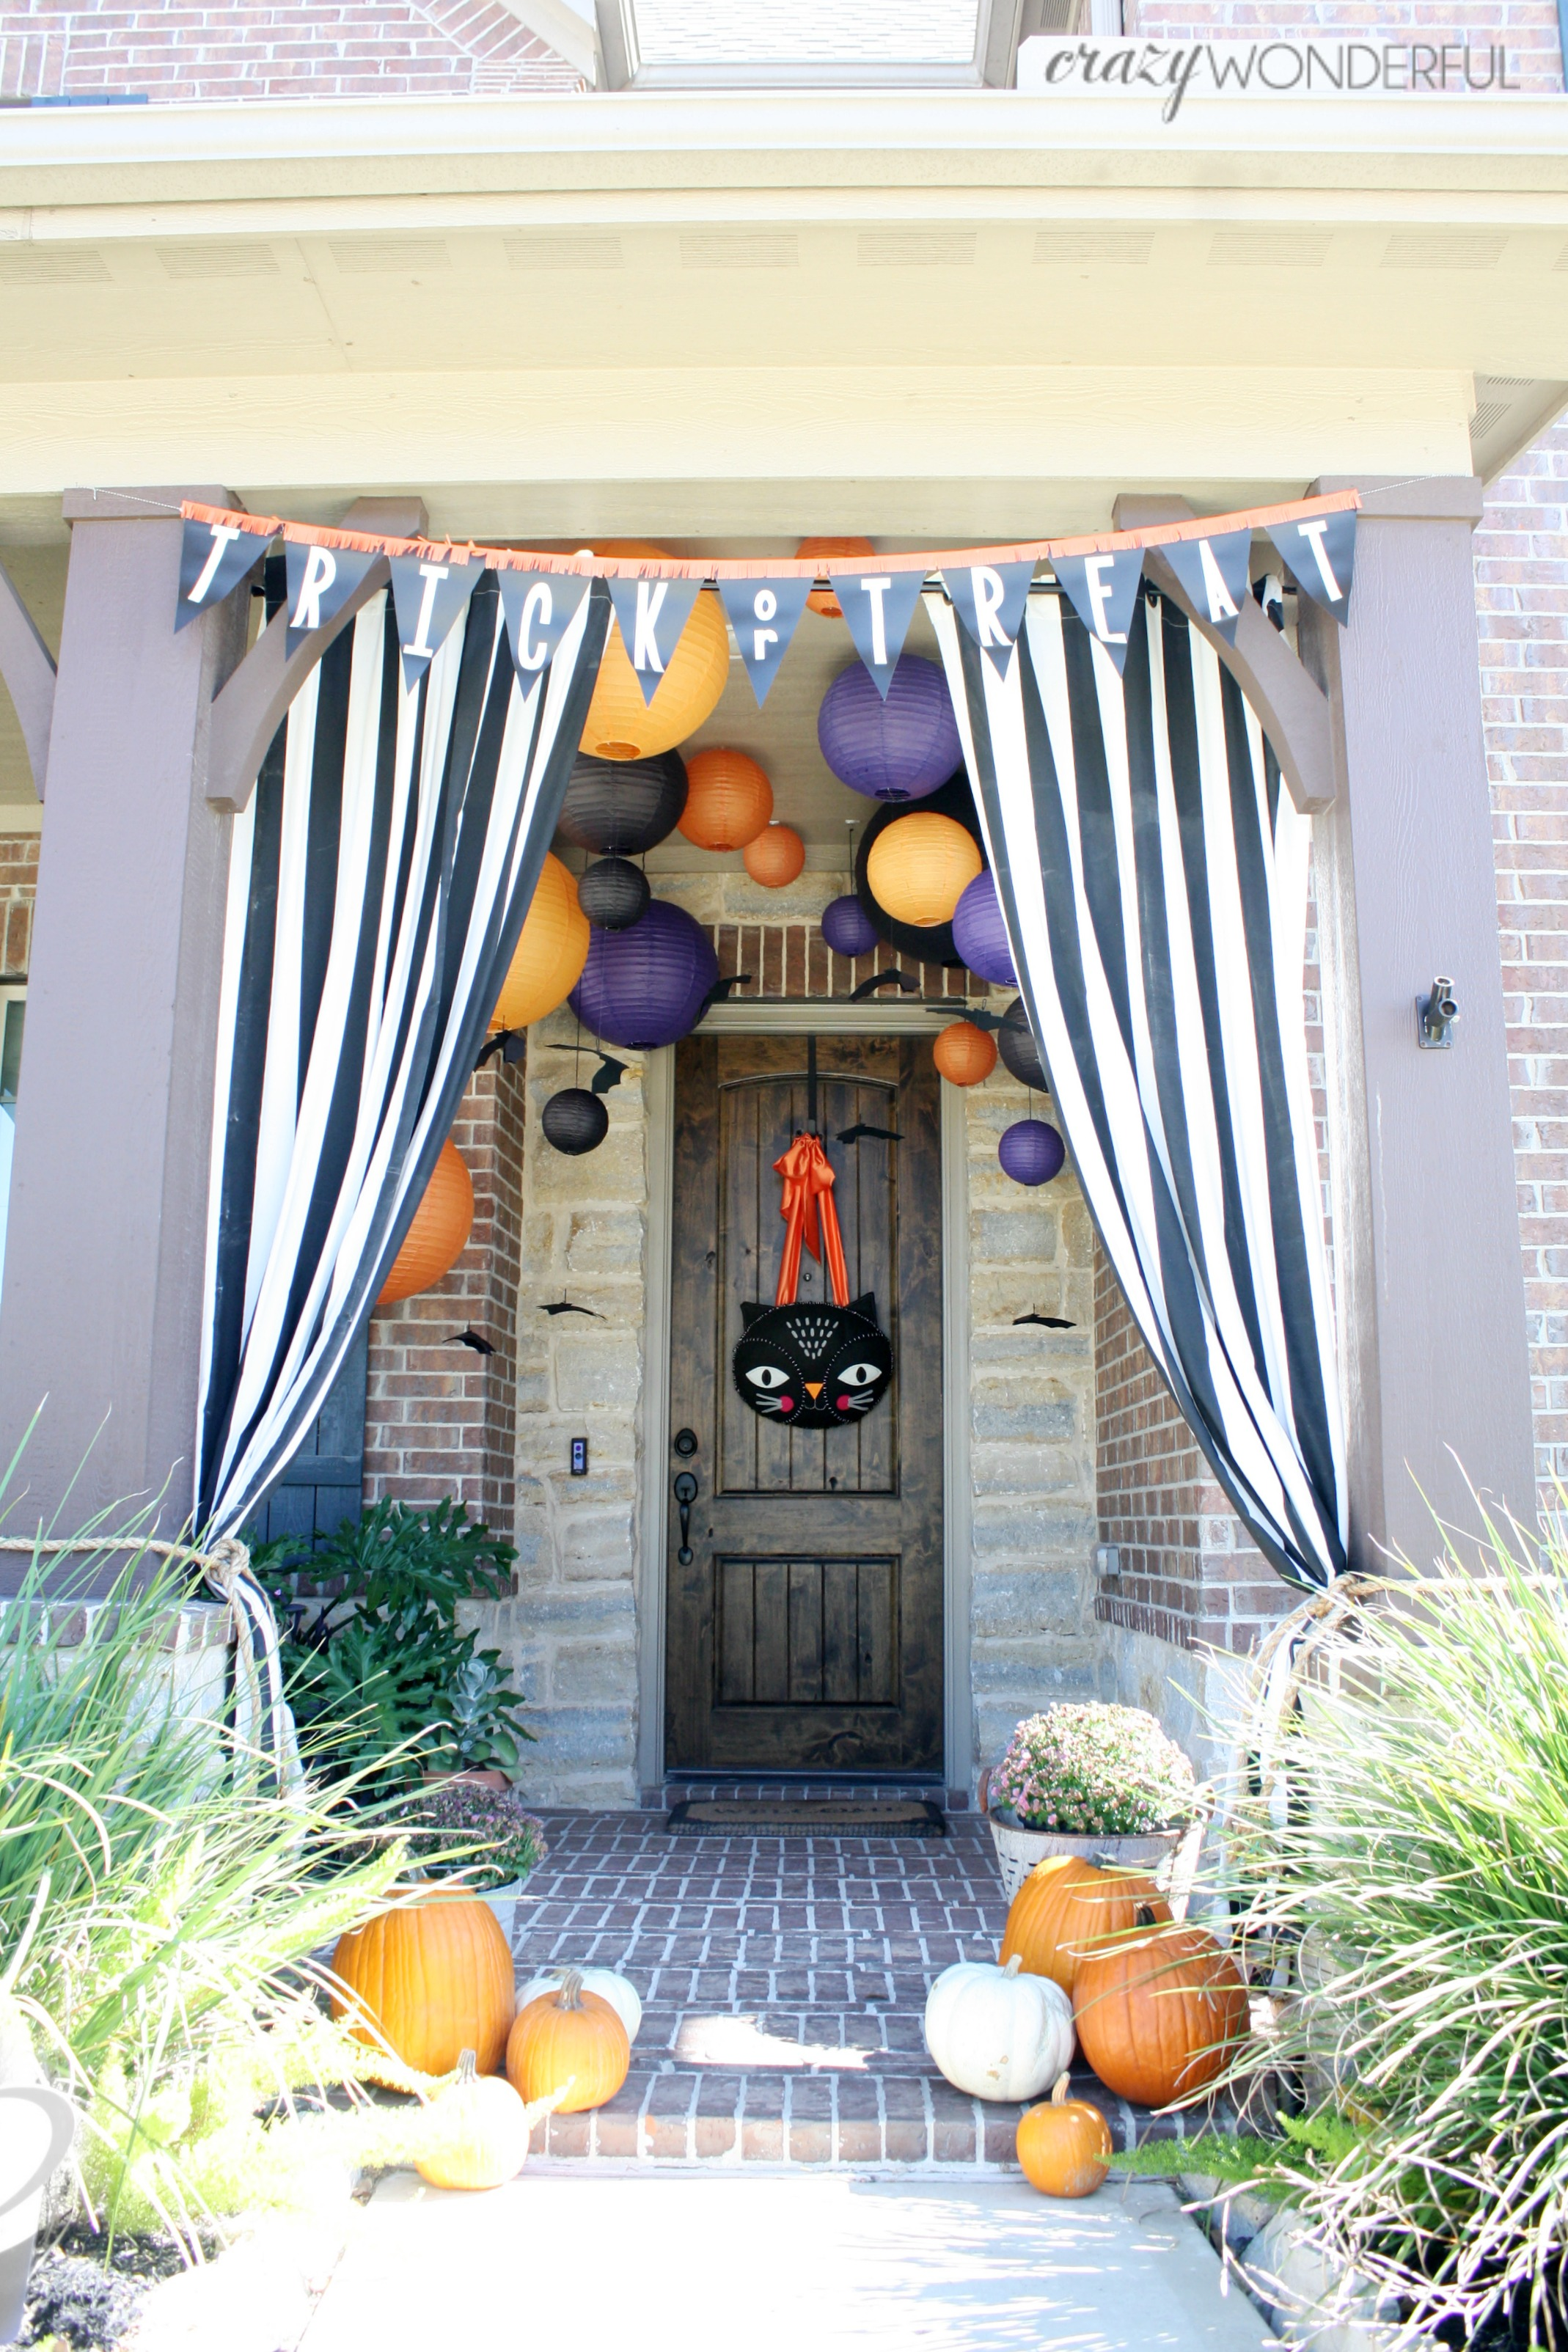 halloween porch decorations - crazy wonderful